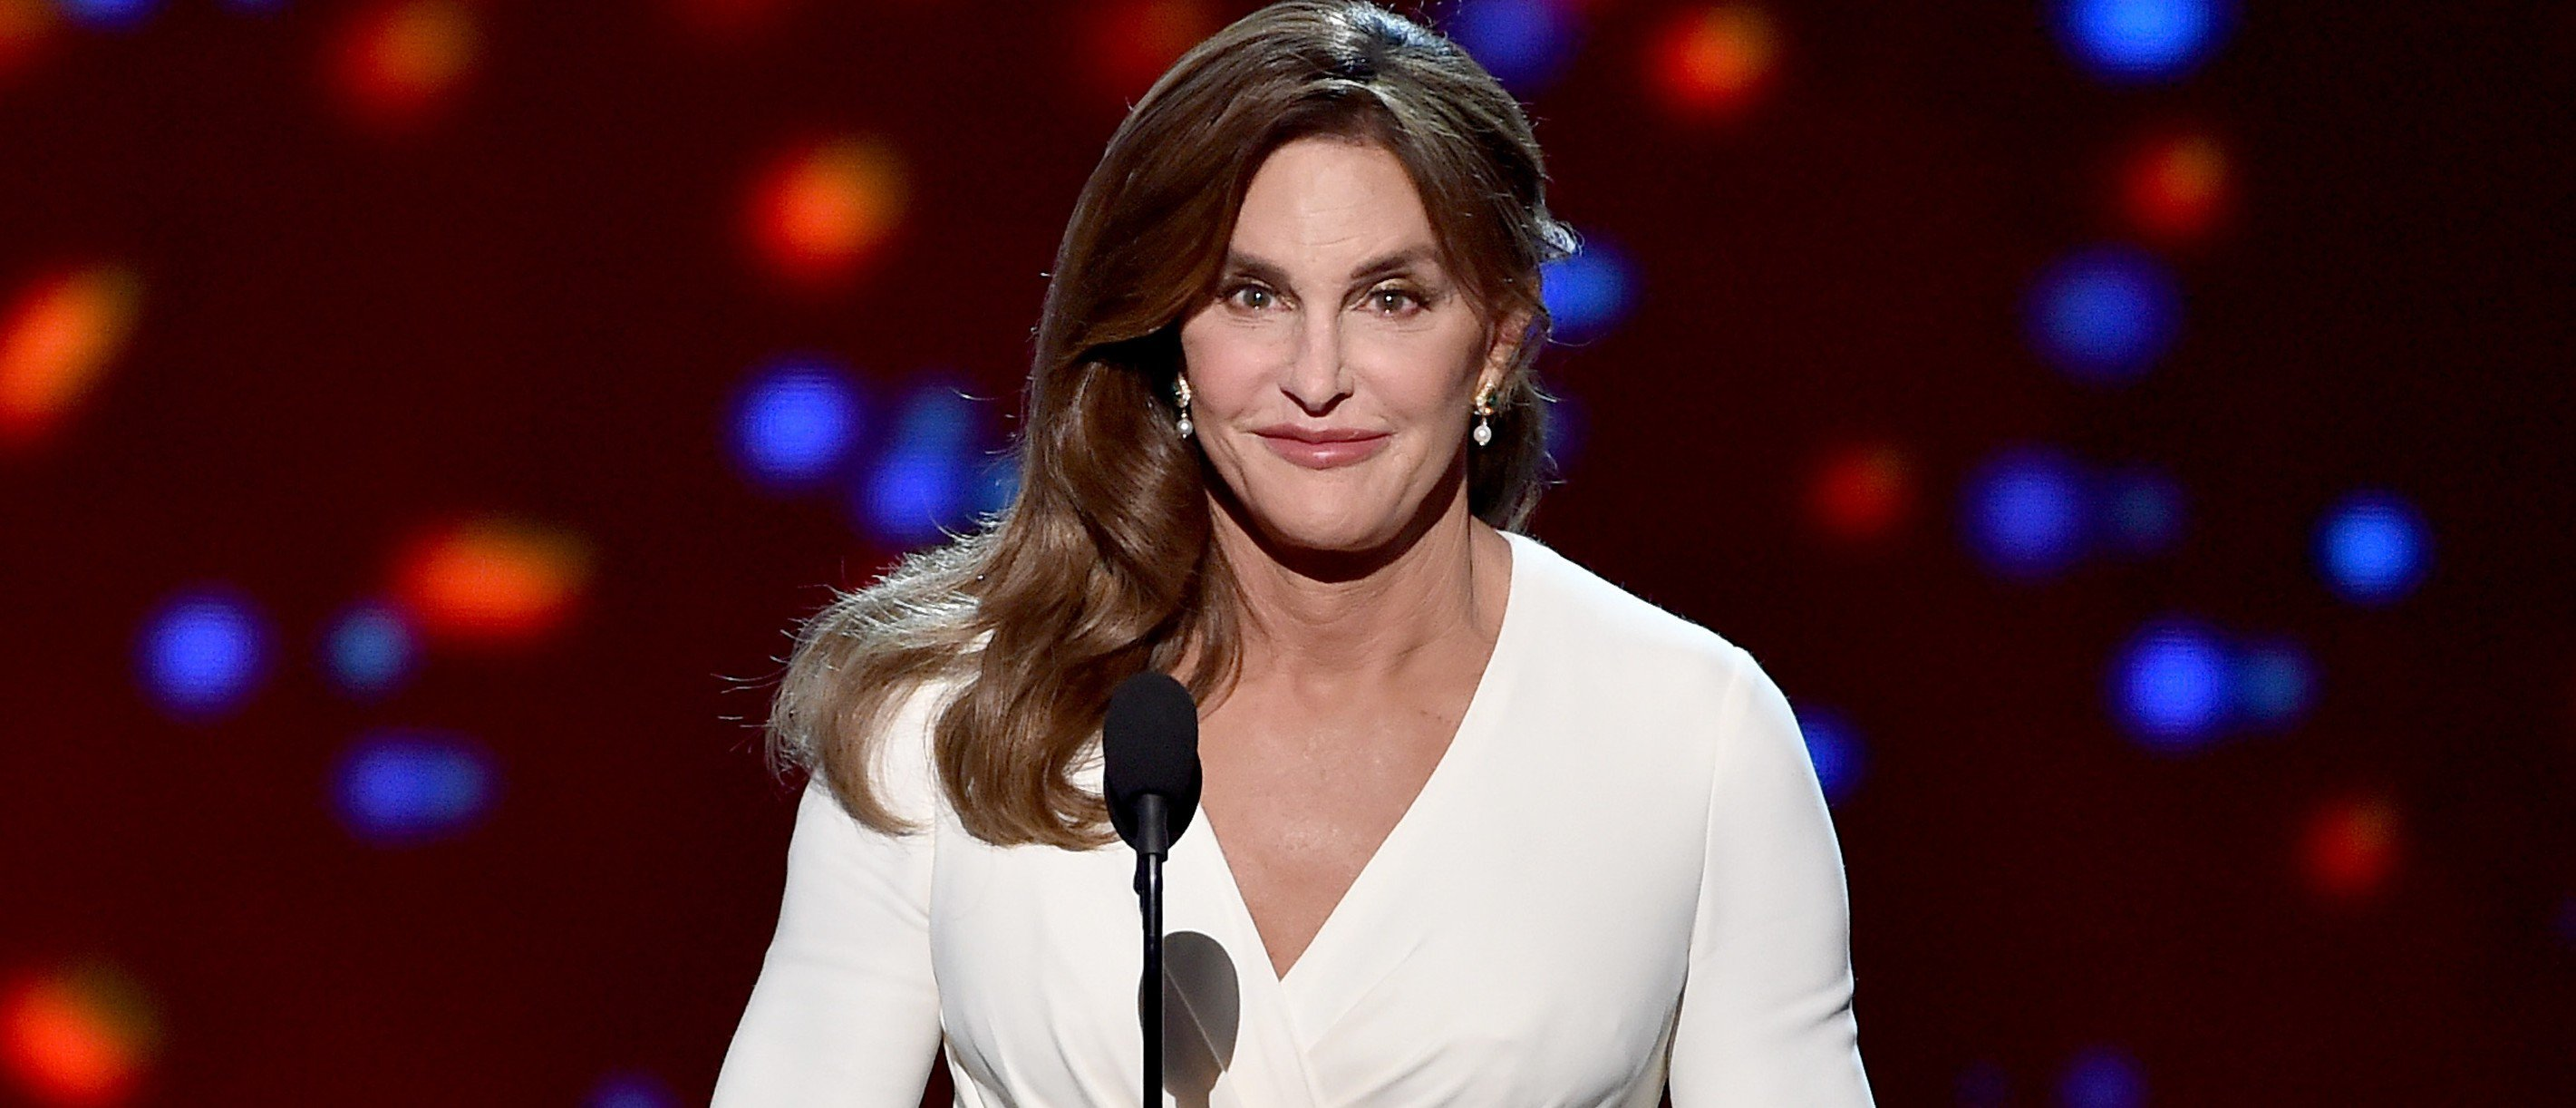 Caitlyn Jenner Apologizes For Wearing Trump Hat